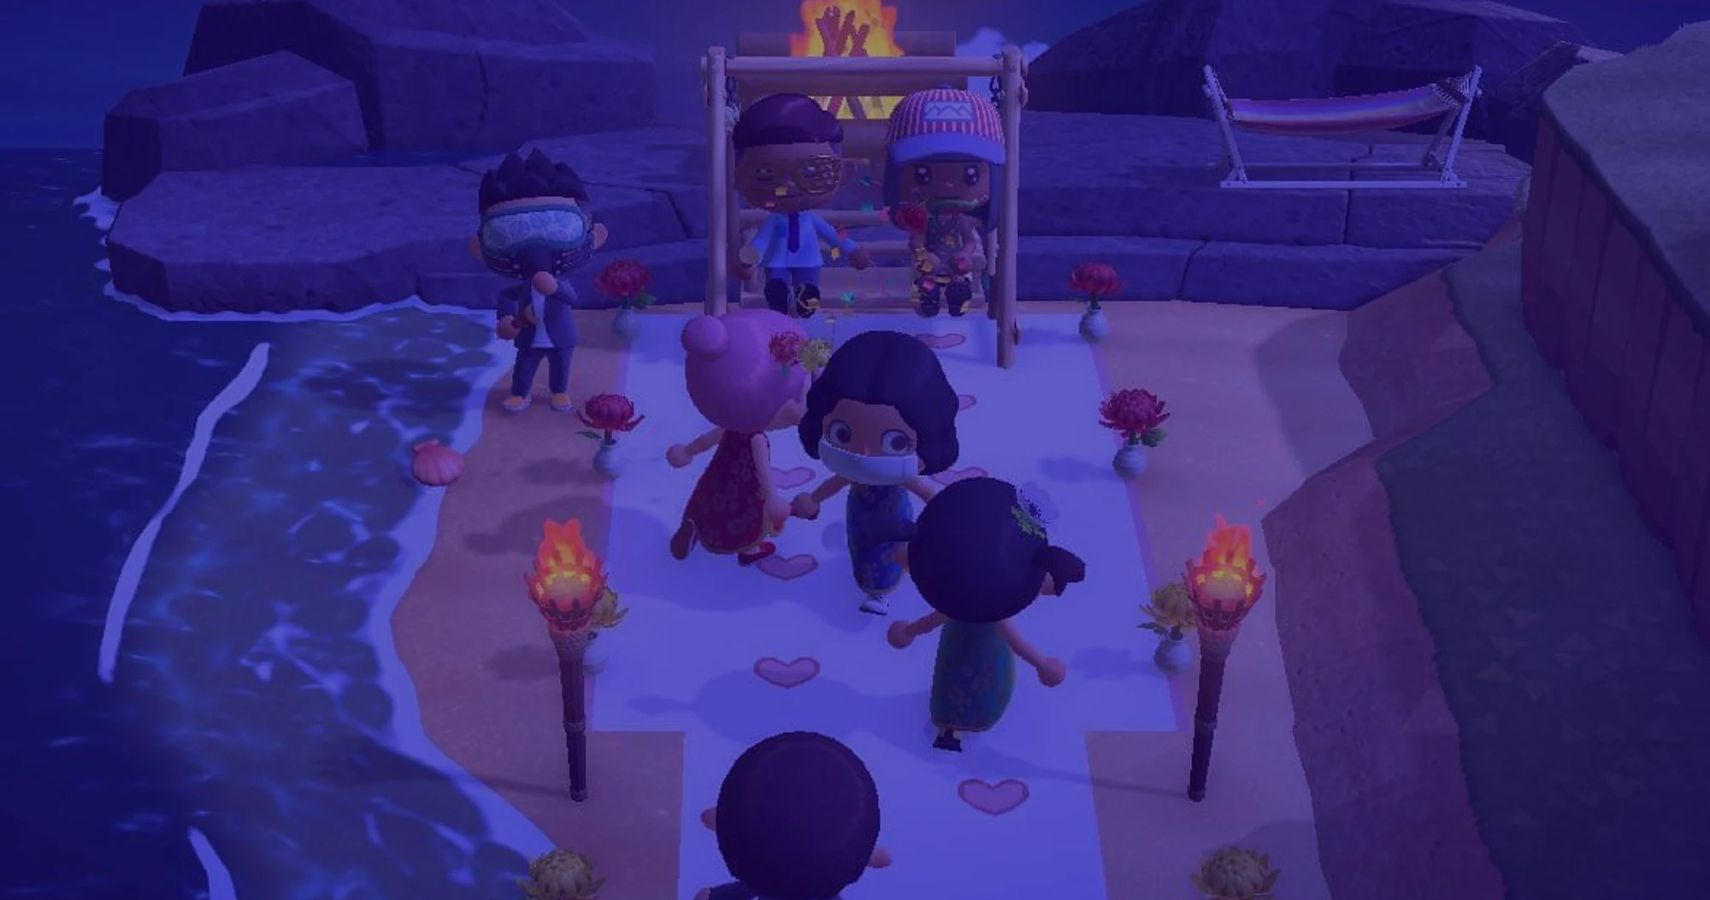 Animal Crossing: New Horizons Becomes Popular Host For Birthdays, Weddings, And More